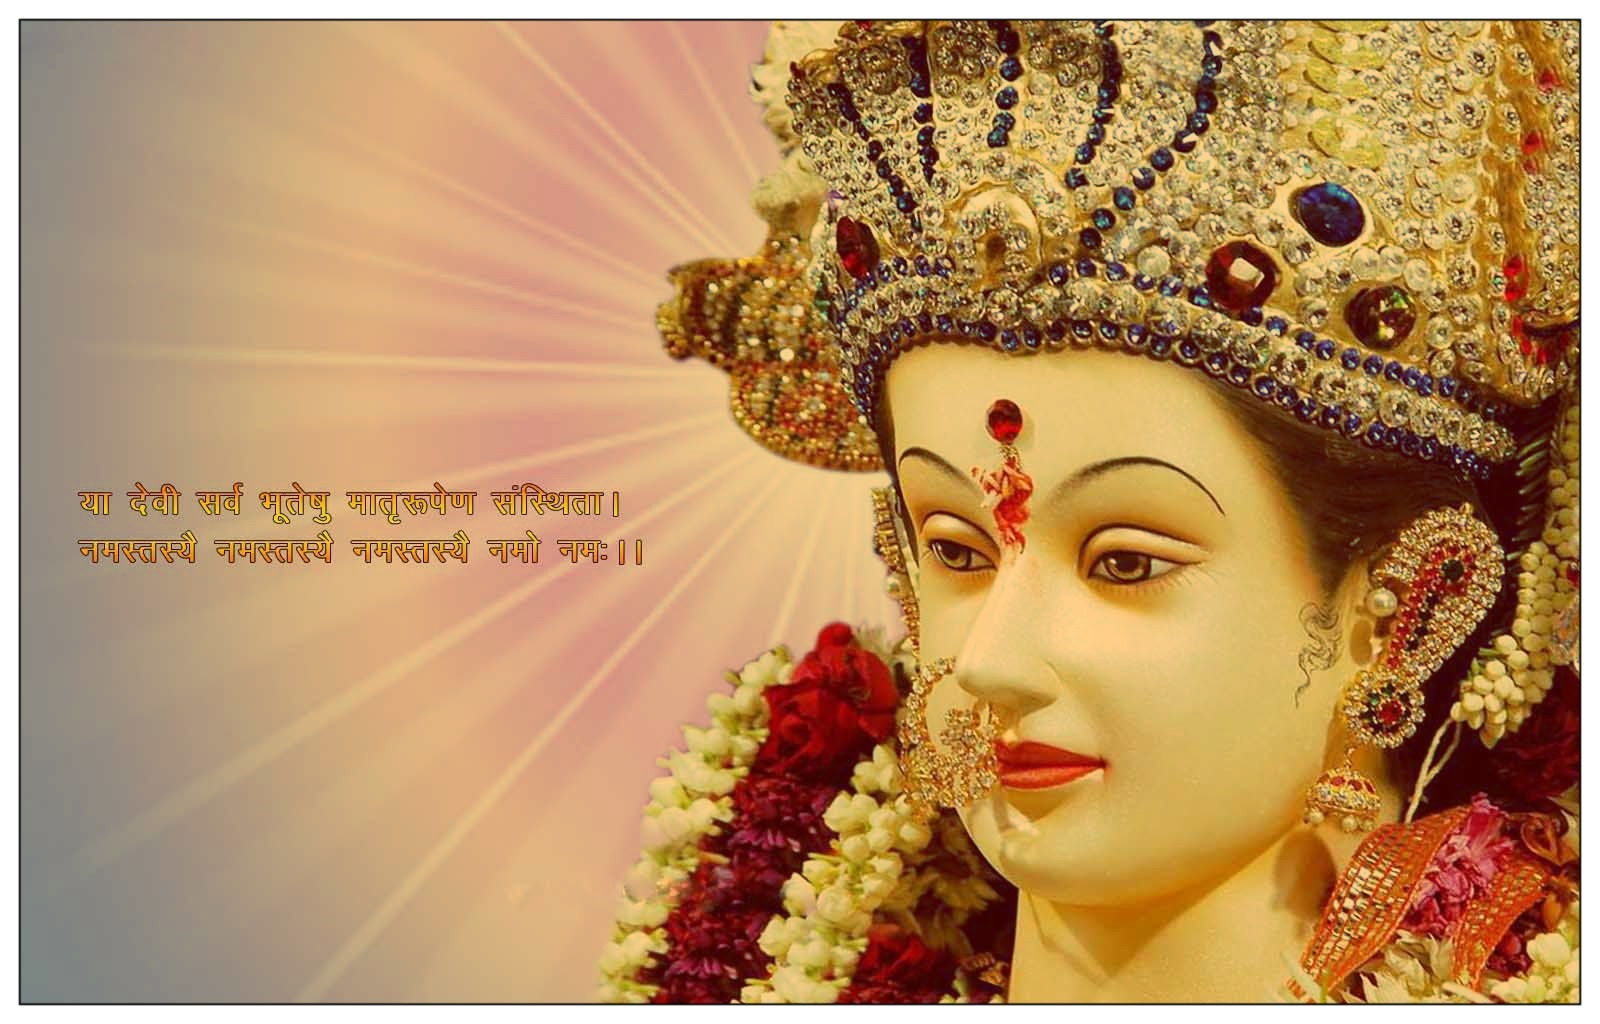 Wallpaper download durga maa - Download Maa Durga Photos Amazing Hd Wallpaper Festival Chaska